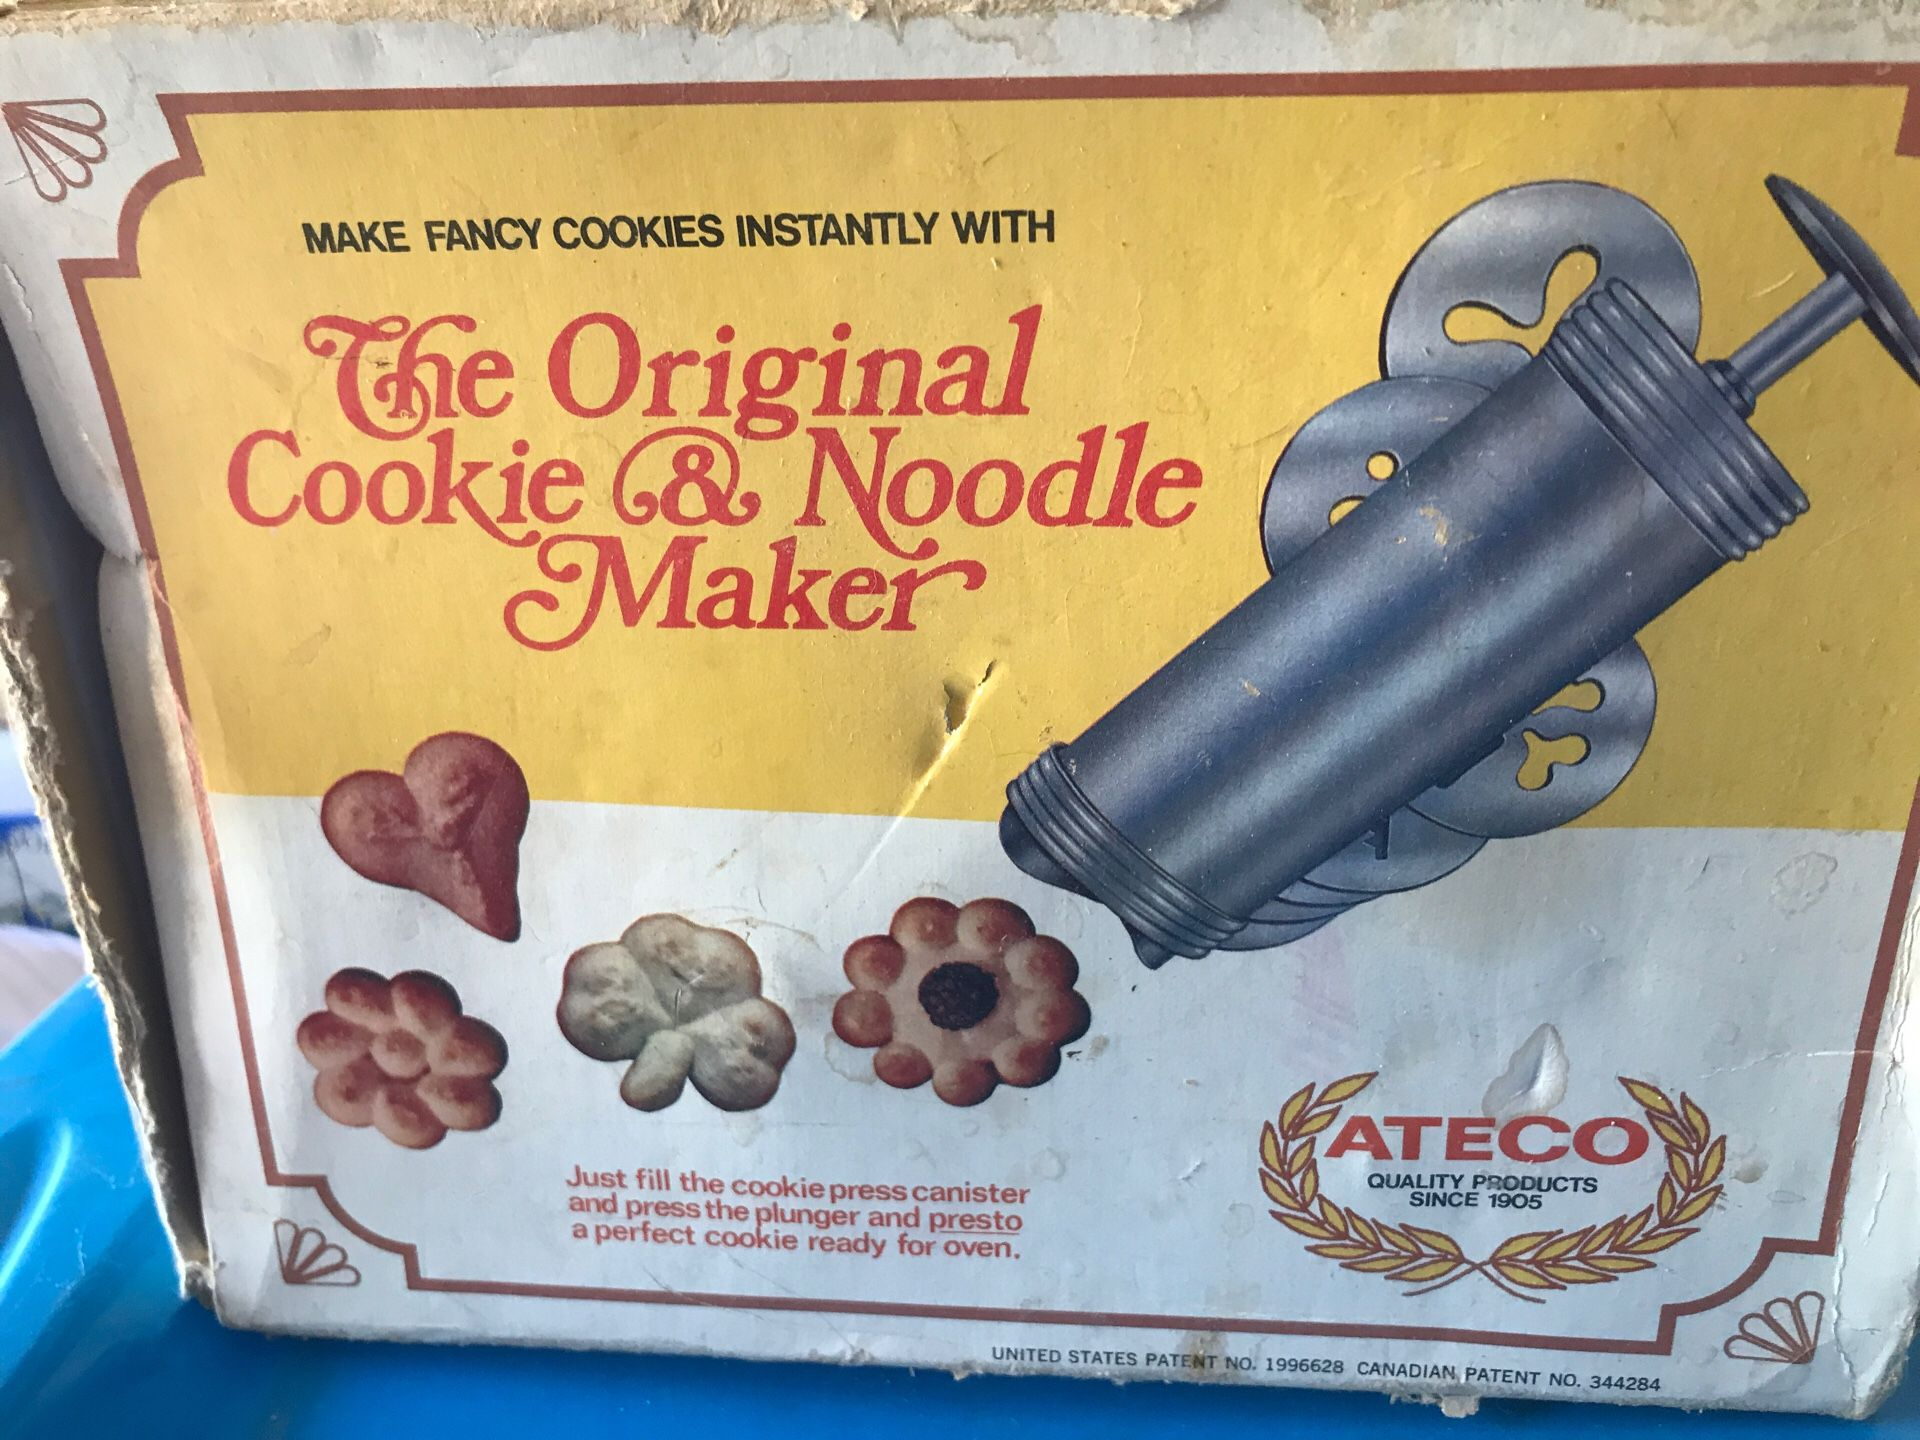 The Original Cookie and Noodle Maker